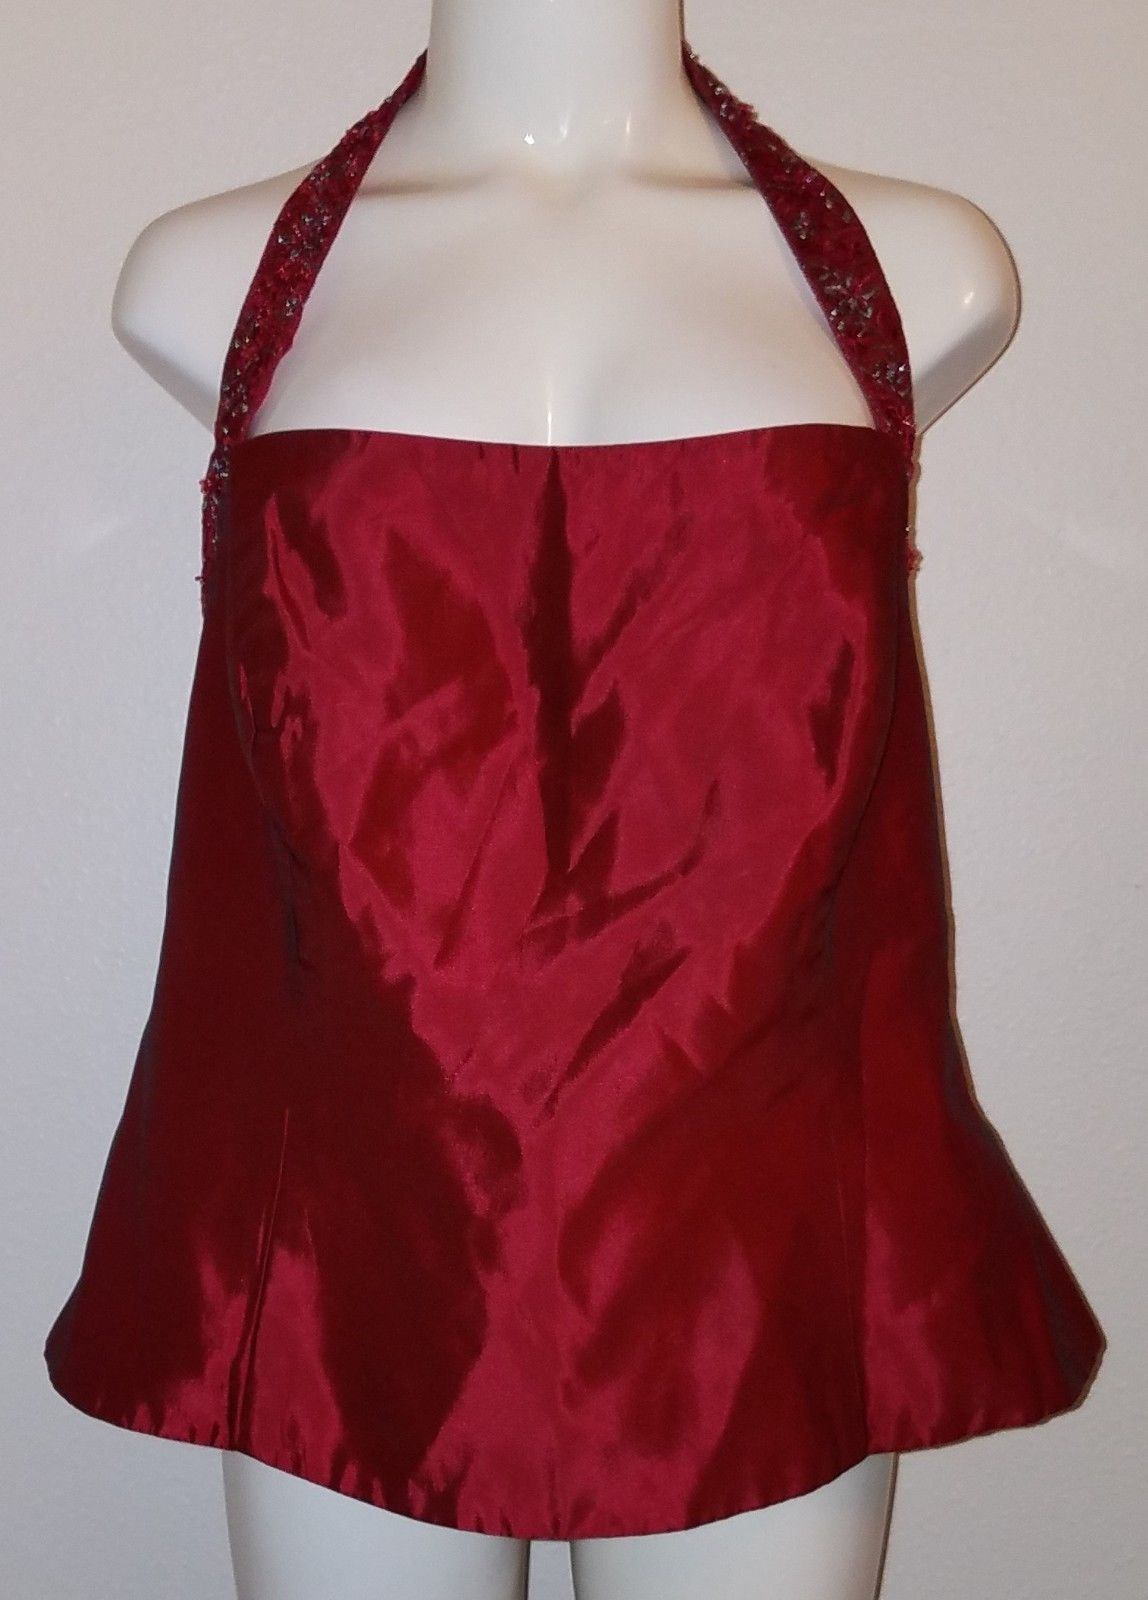 Primary image for Davids Bridal Burgundy Beaded Halter Top Size 18 Dress Formal Wedding Embroidery